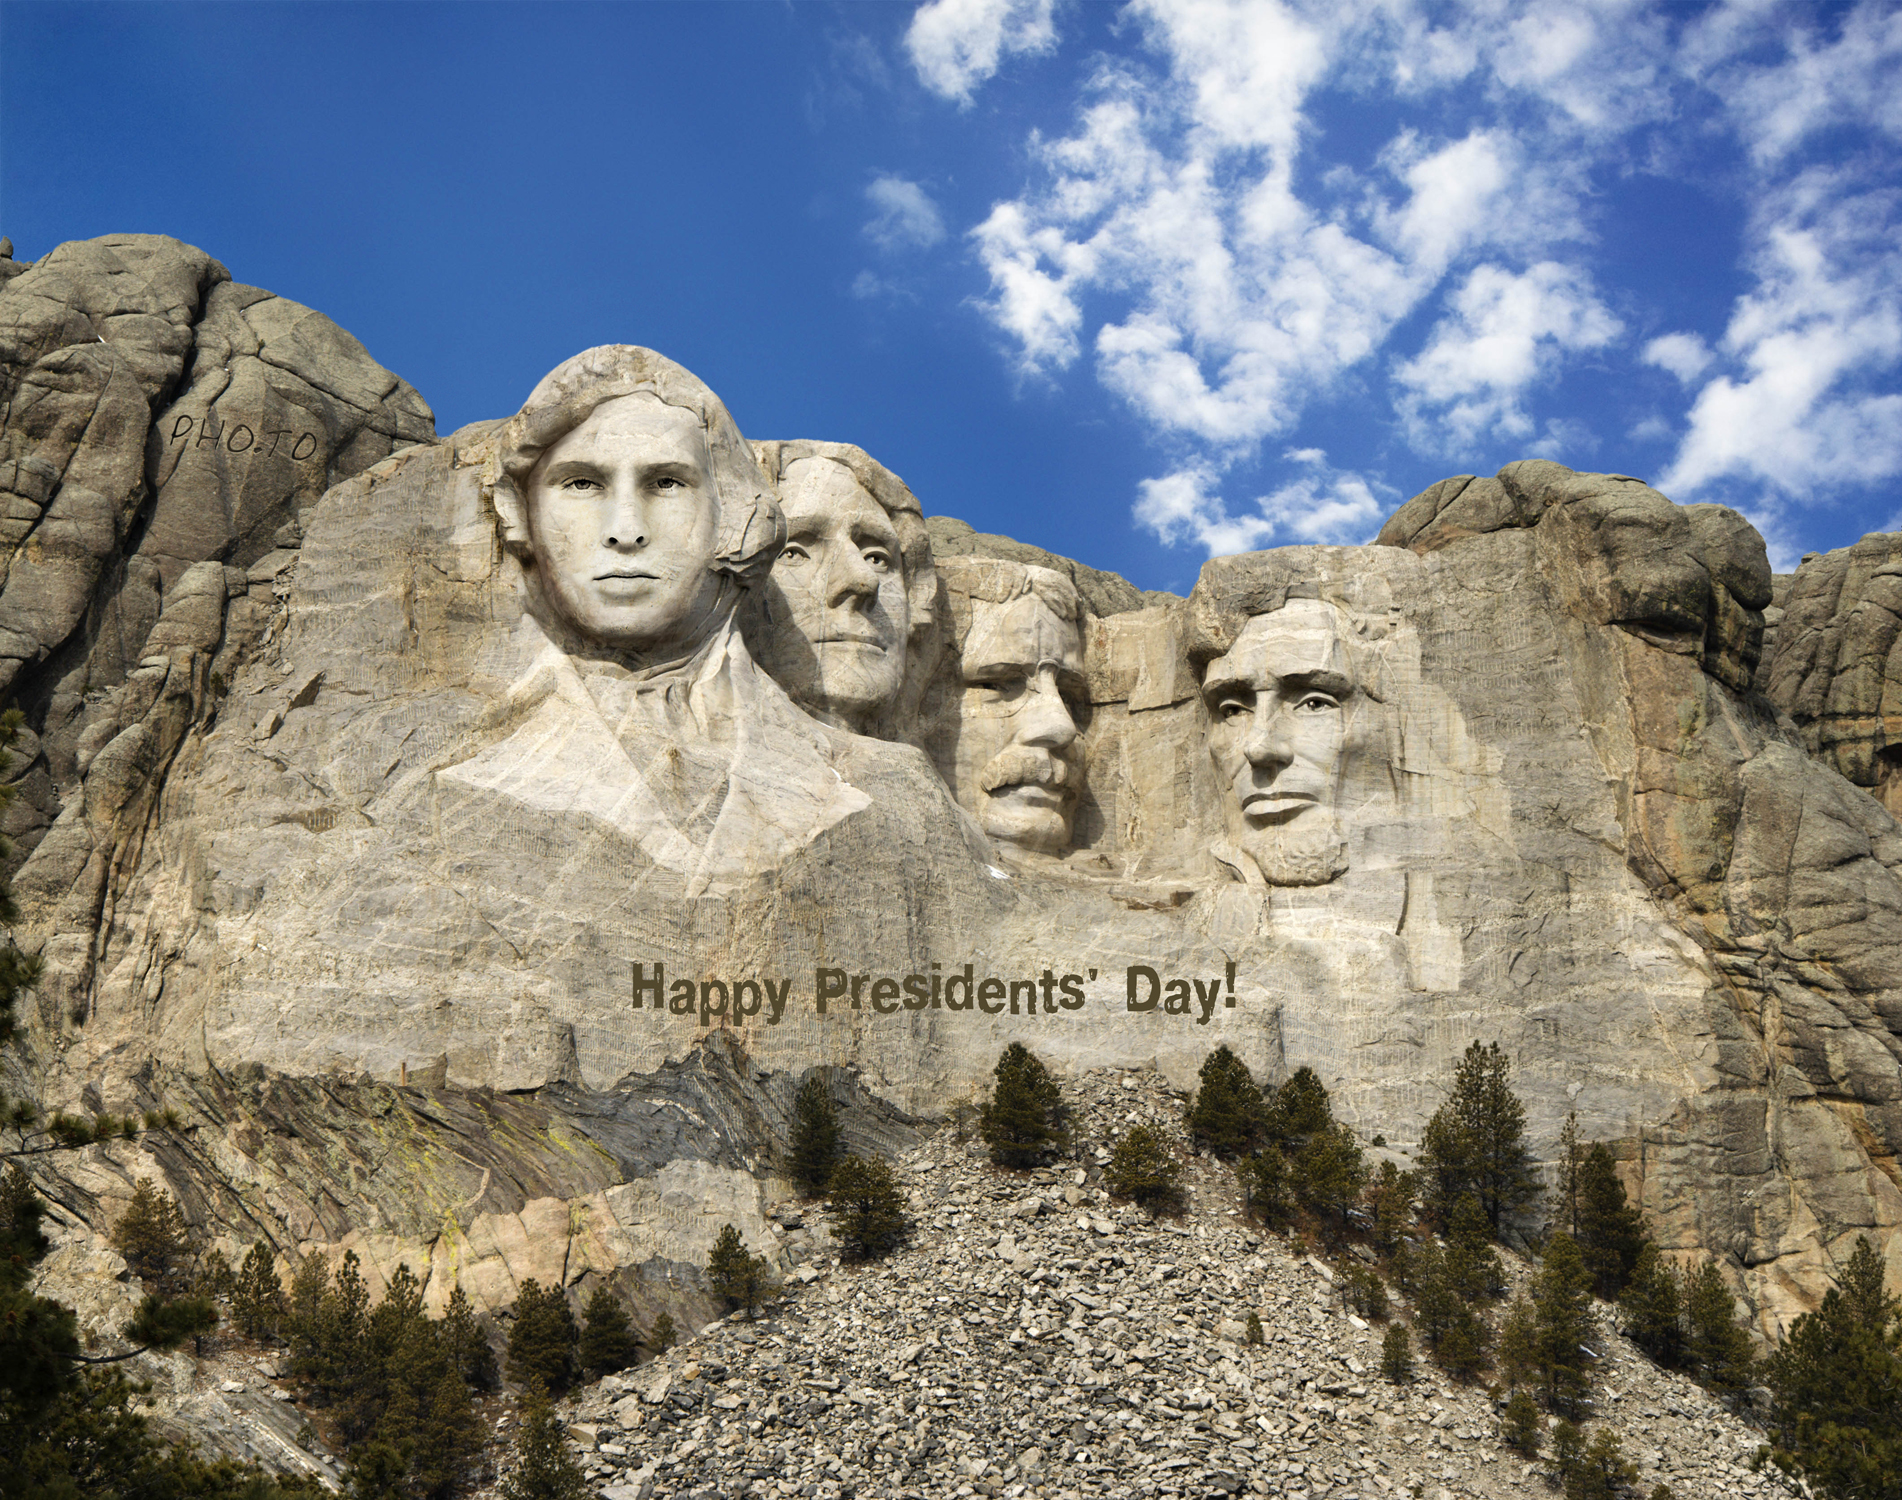 A serious man has been put instead of a president with Mount Rushmore photo montage.